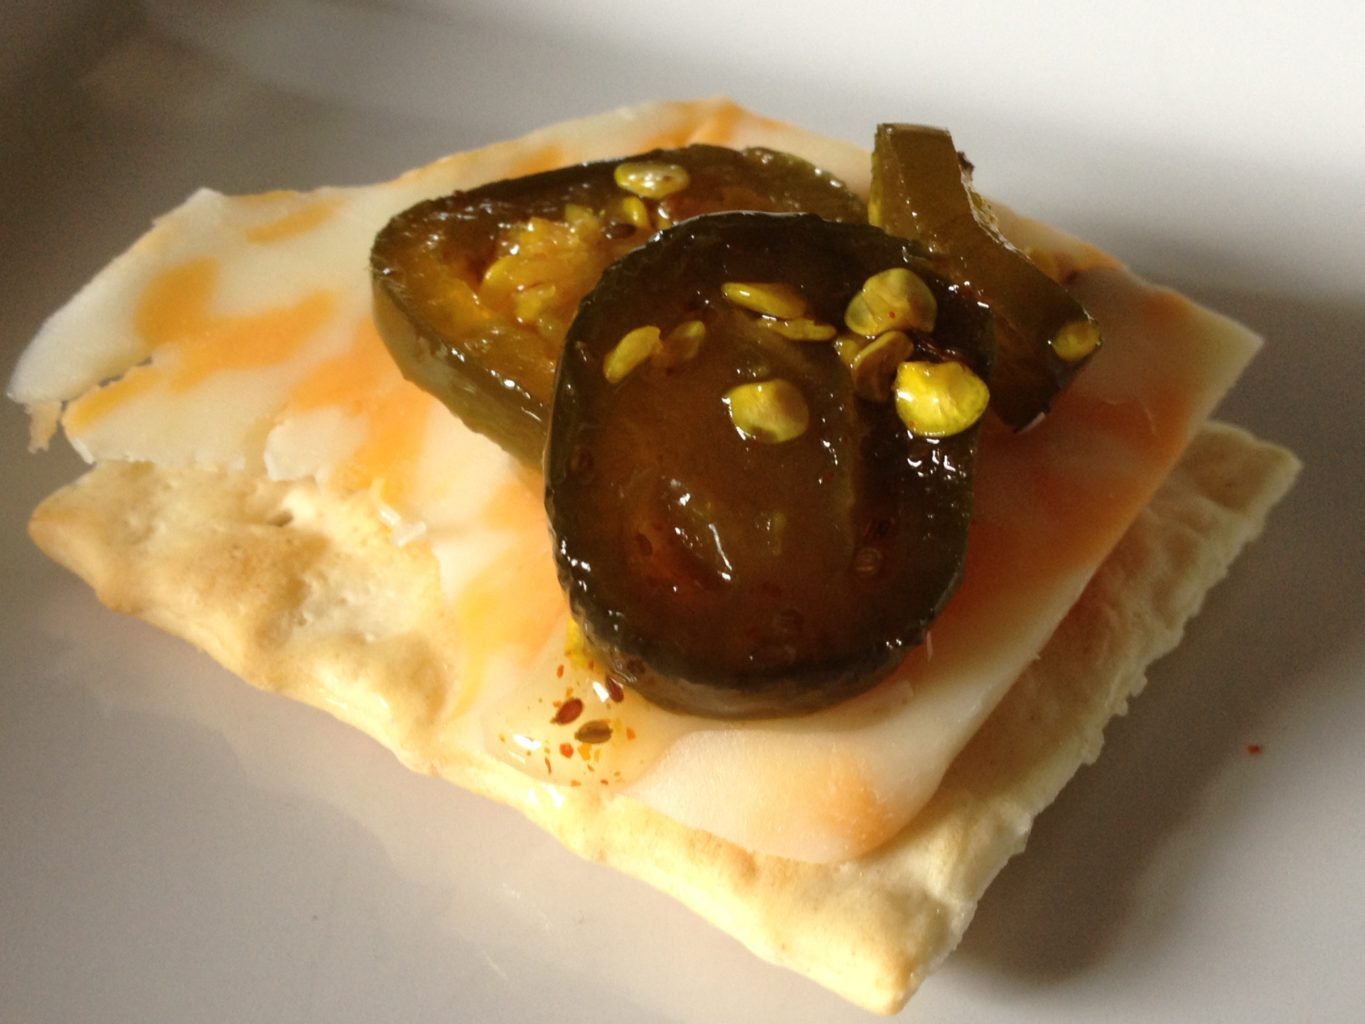 Candied Jalapeno Recipe - A Great Use For All Of Those Jalapenos!